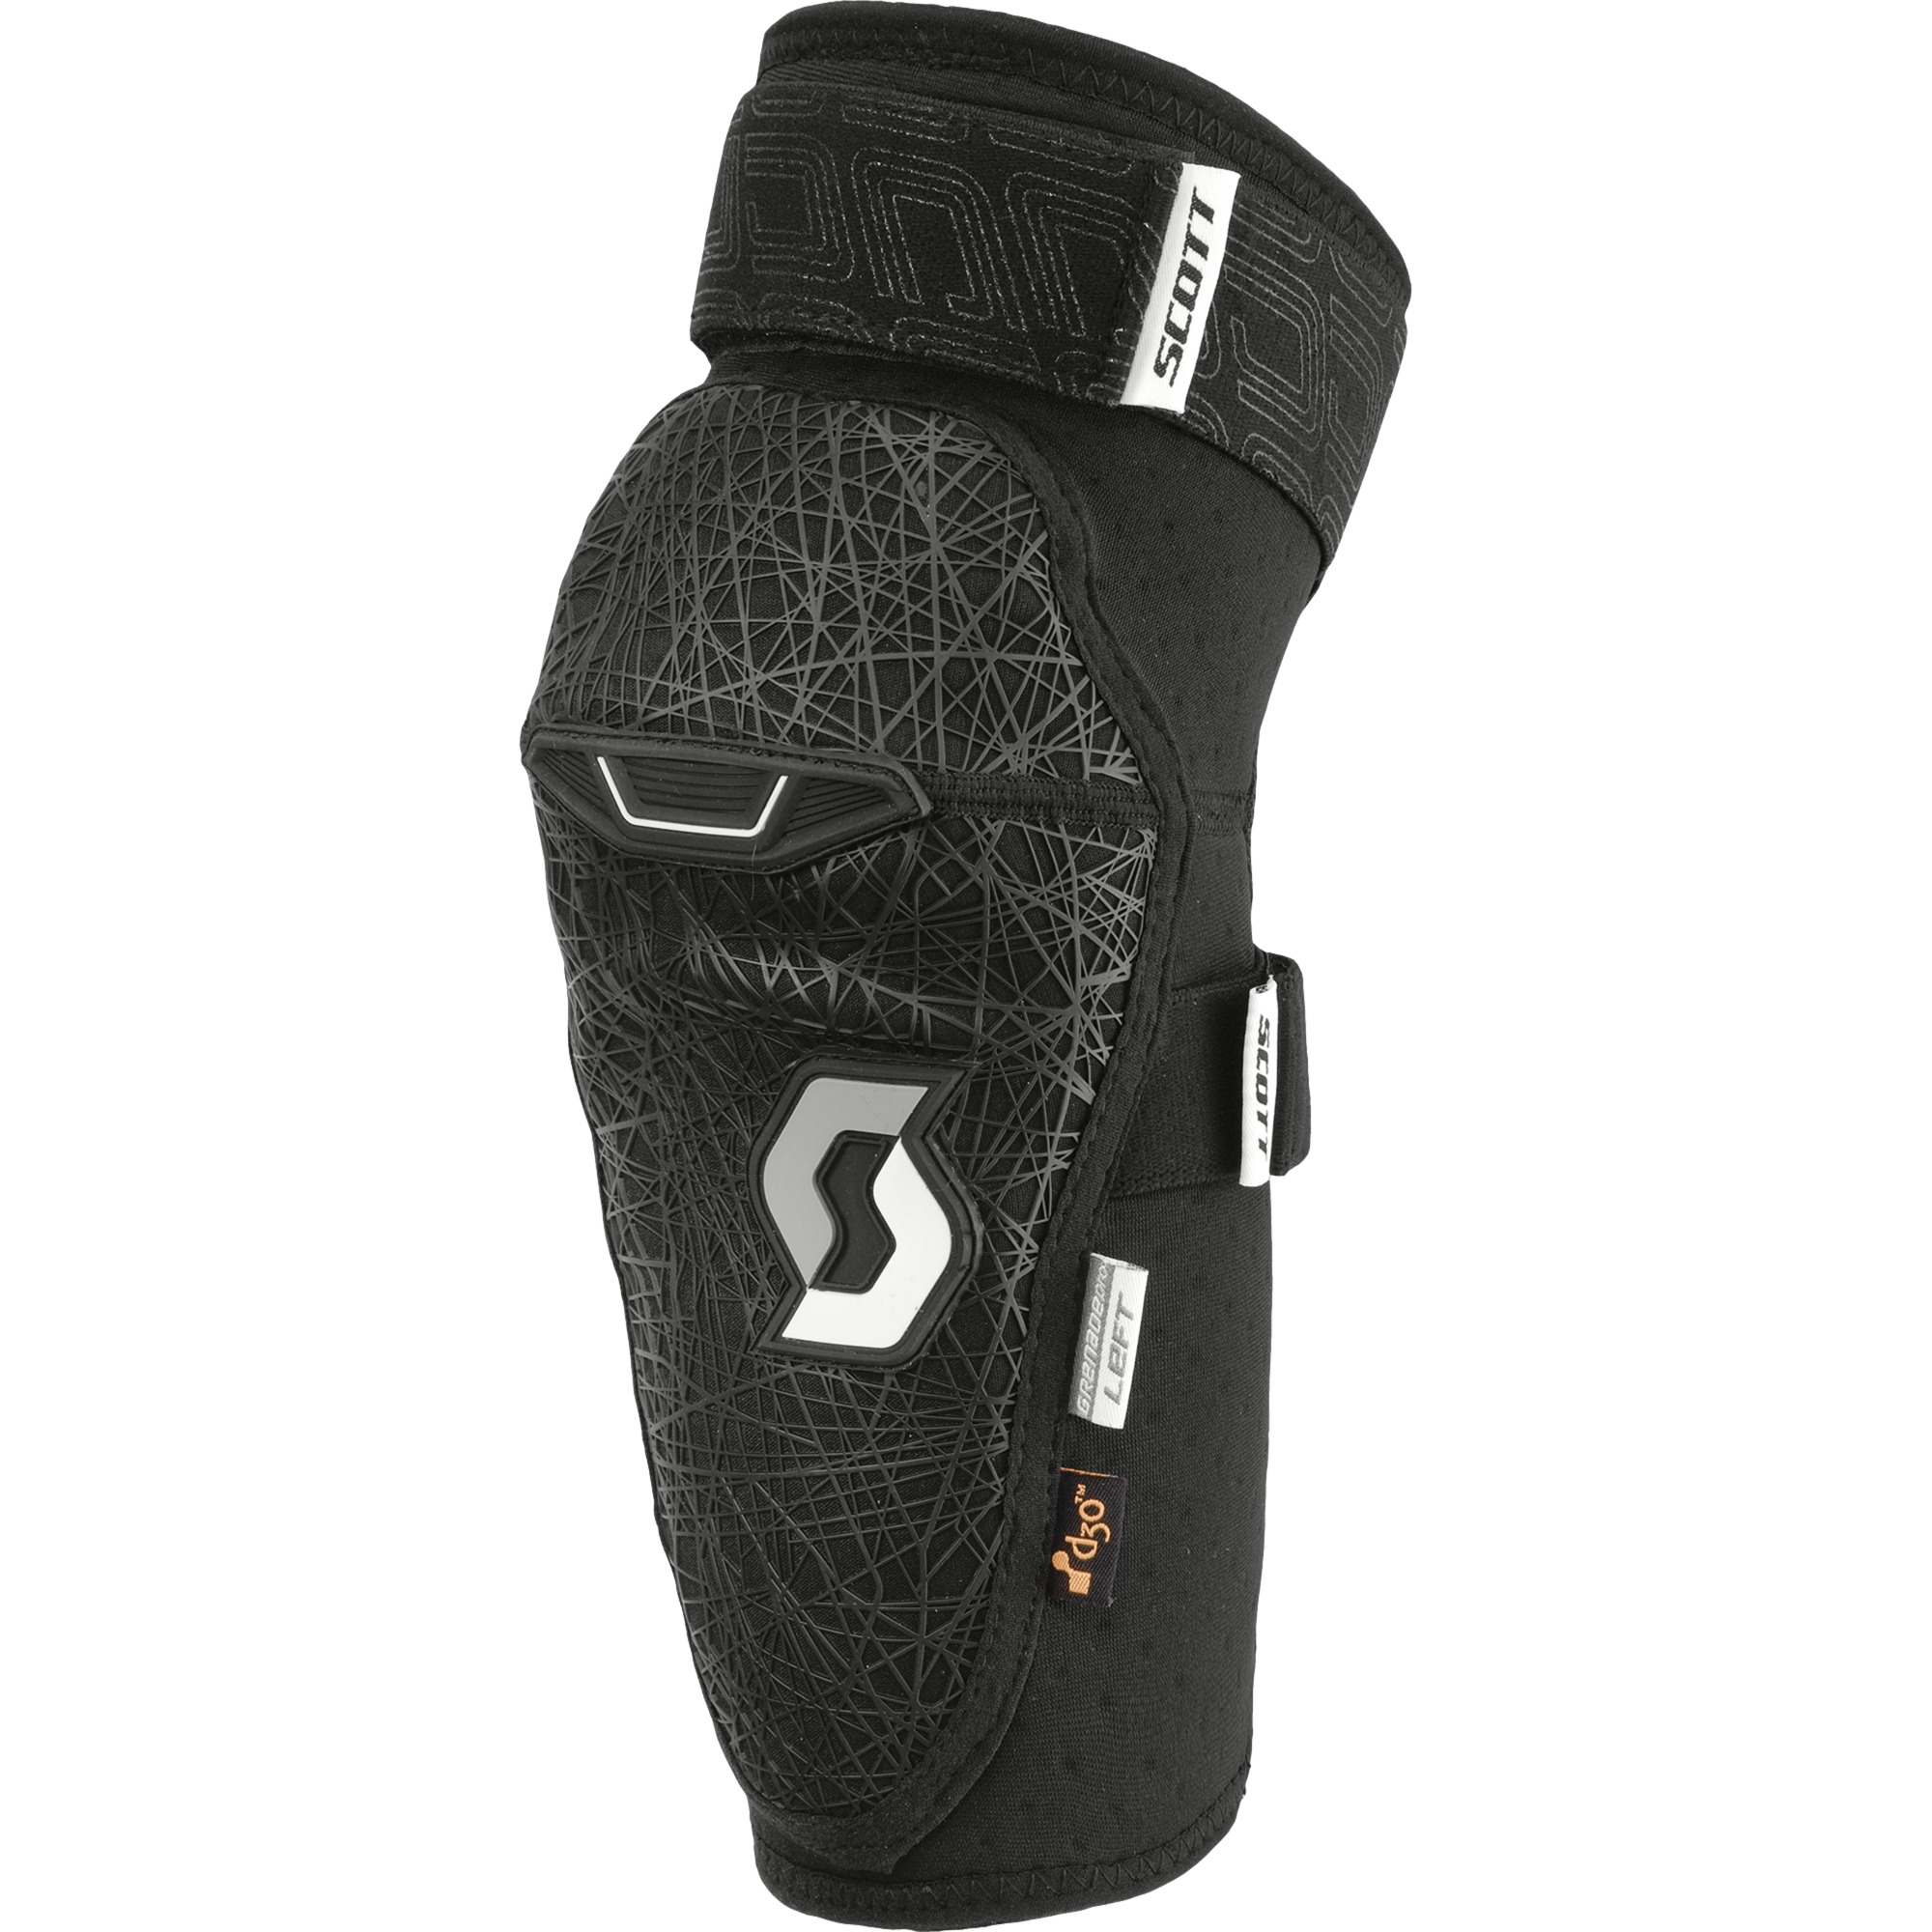 Elbow Guards Grenade Pro II